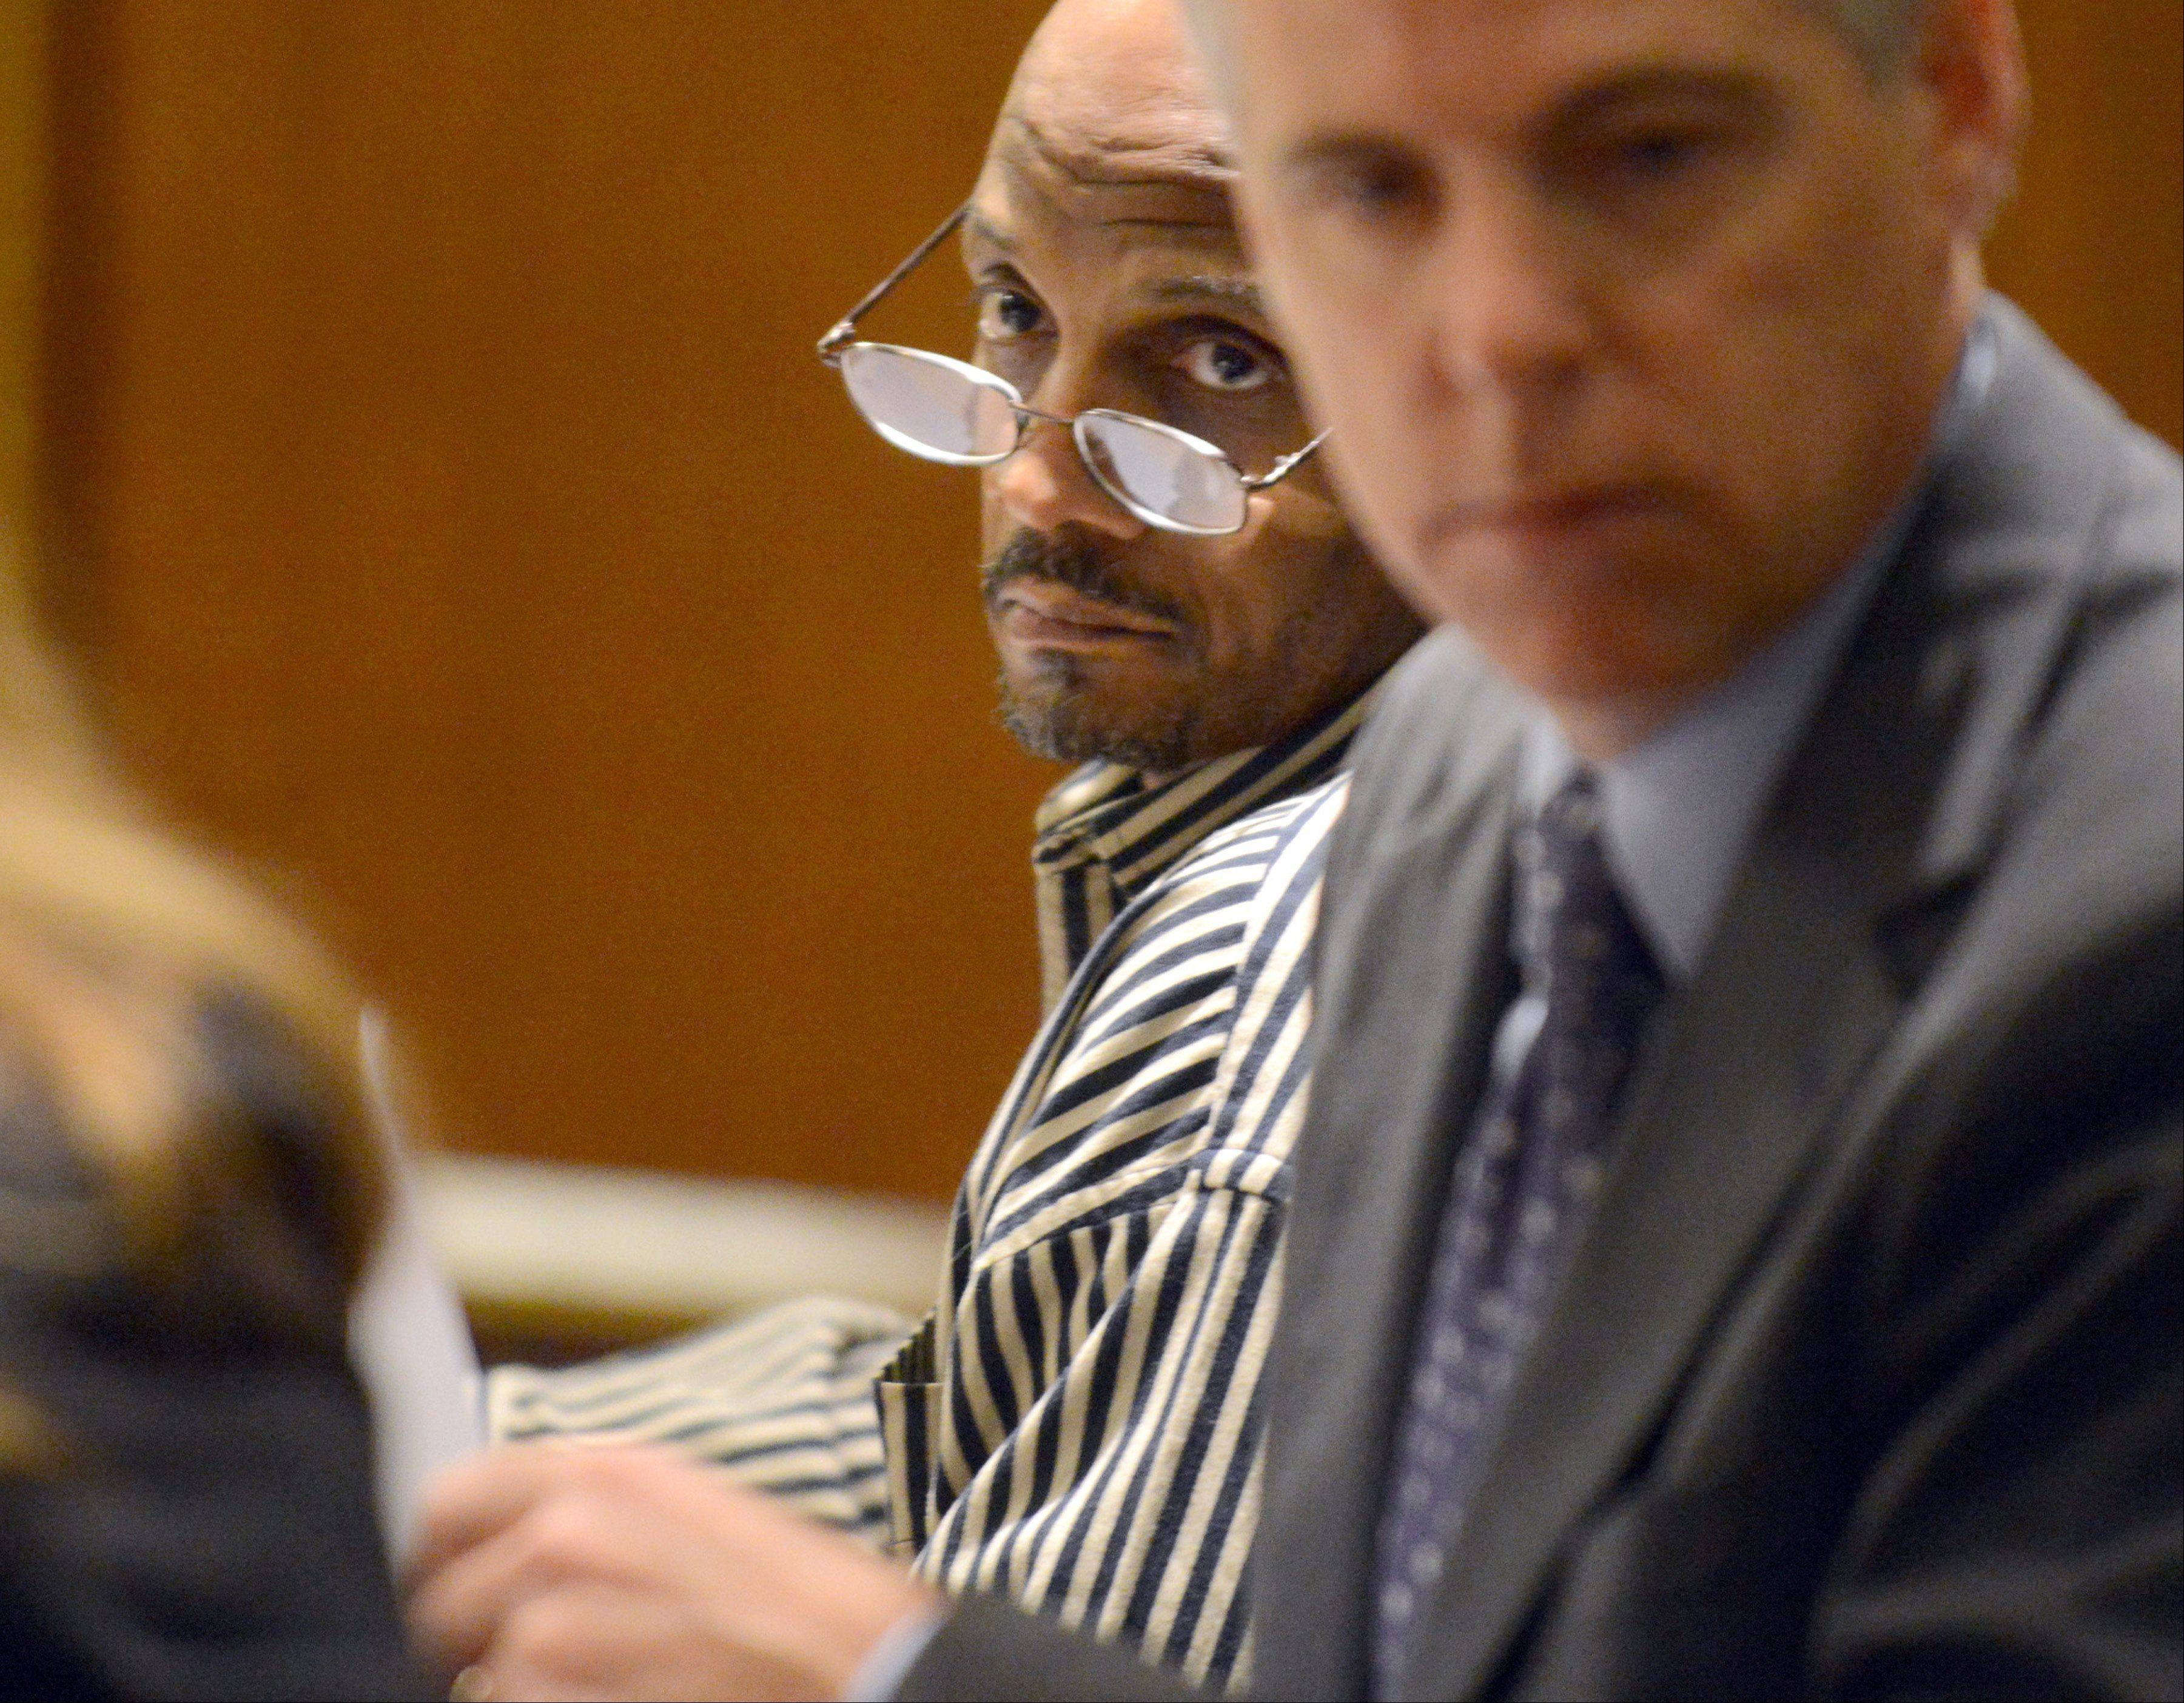 James Ealy, 48, of Lake Villa looks to his attorney, Assistant Public Defender Keith Grant, during his trial Thursday.